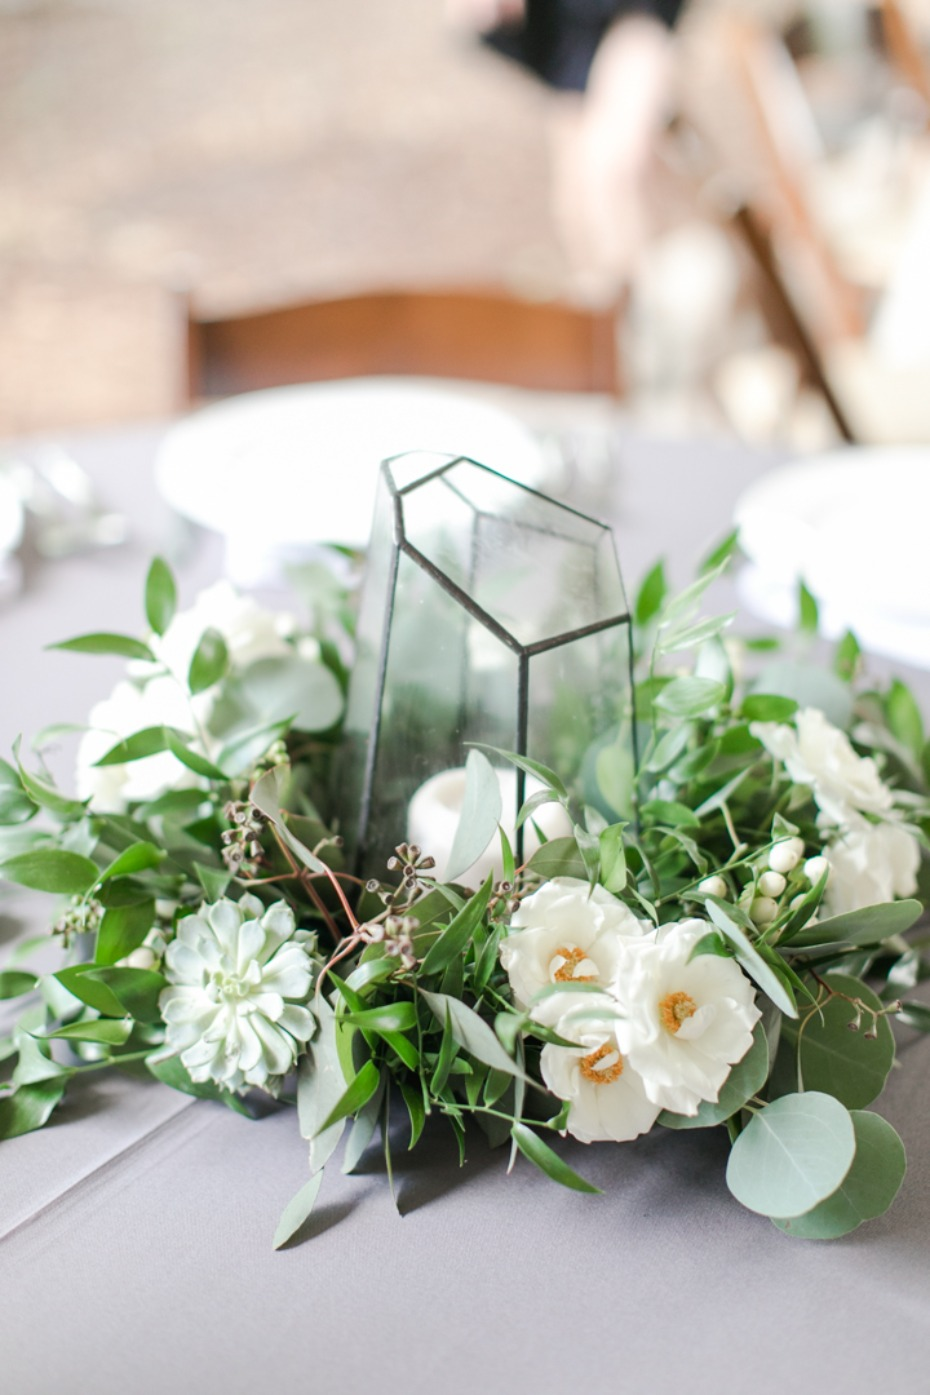 Geometric candle holder centerpiece